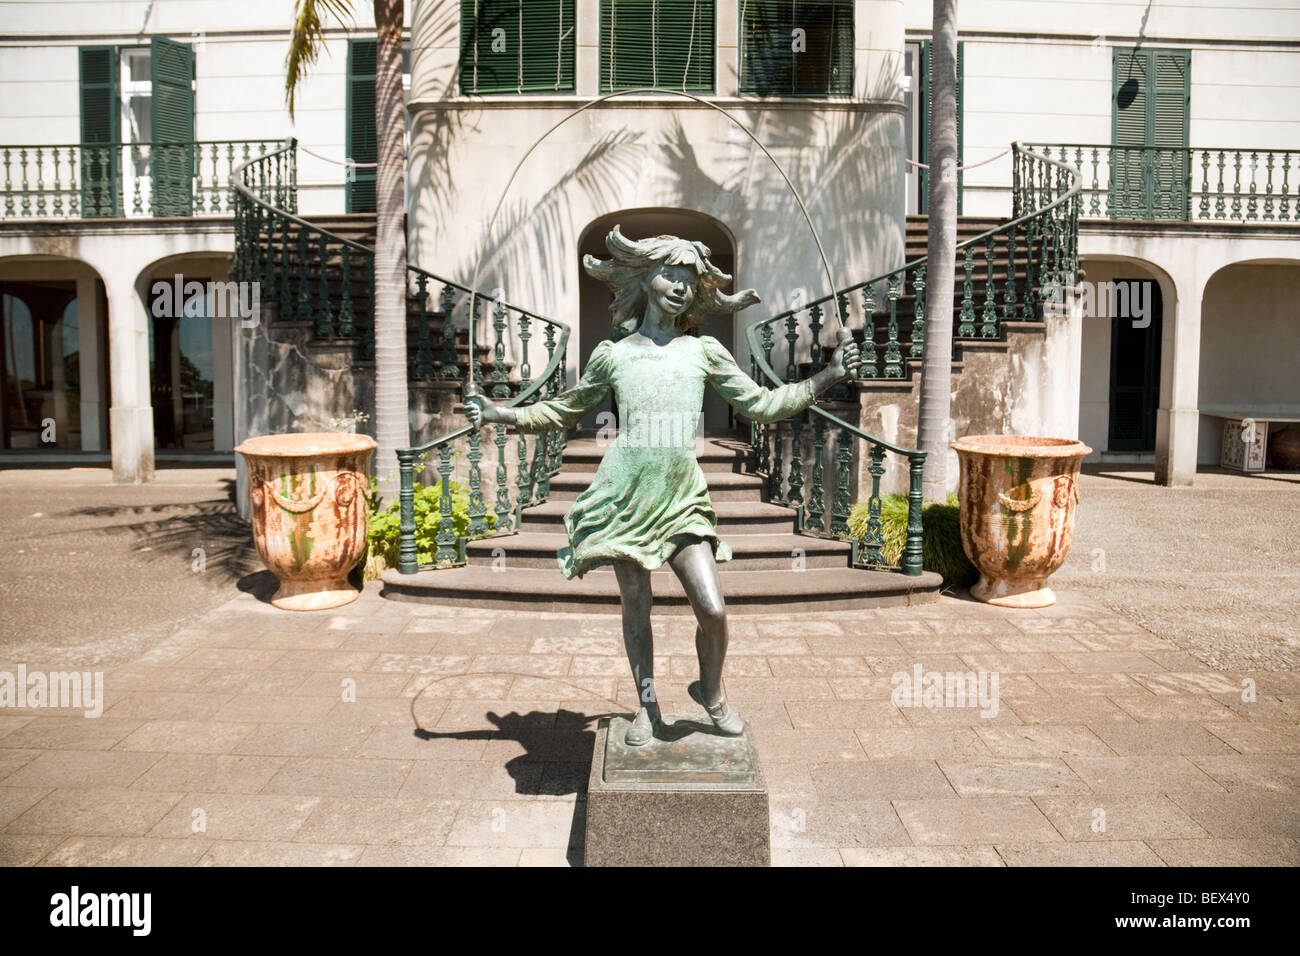 The Statue of a Skipping Girl by James Butler, in the Monte Palace Gardens, Monte, Funchal, Madeira - Stock Image